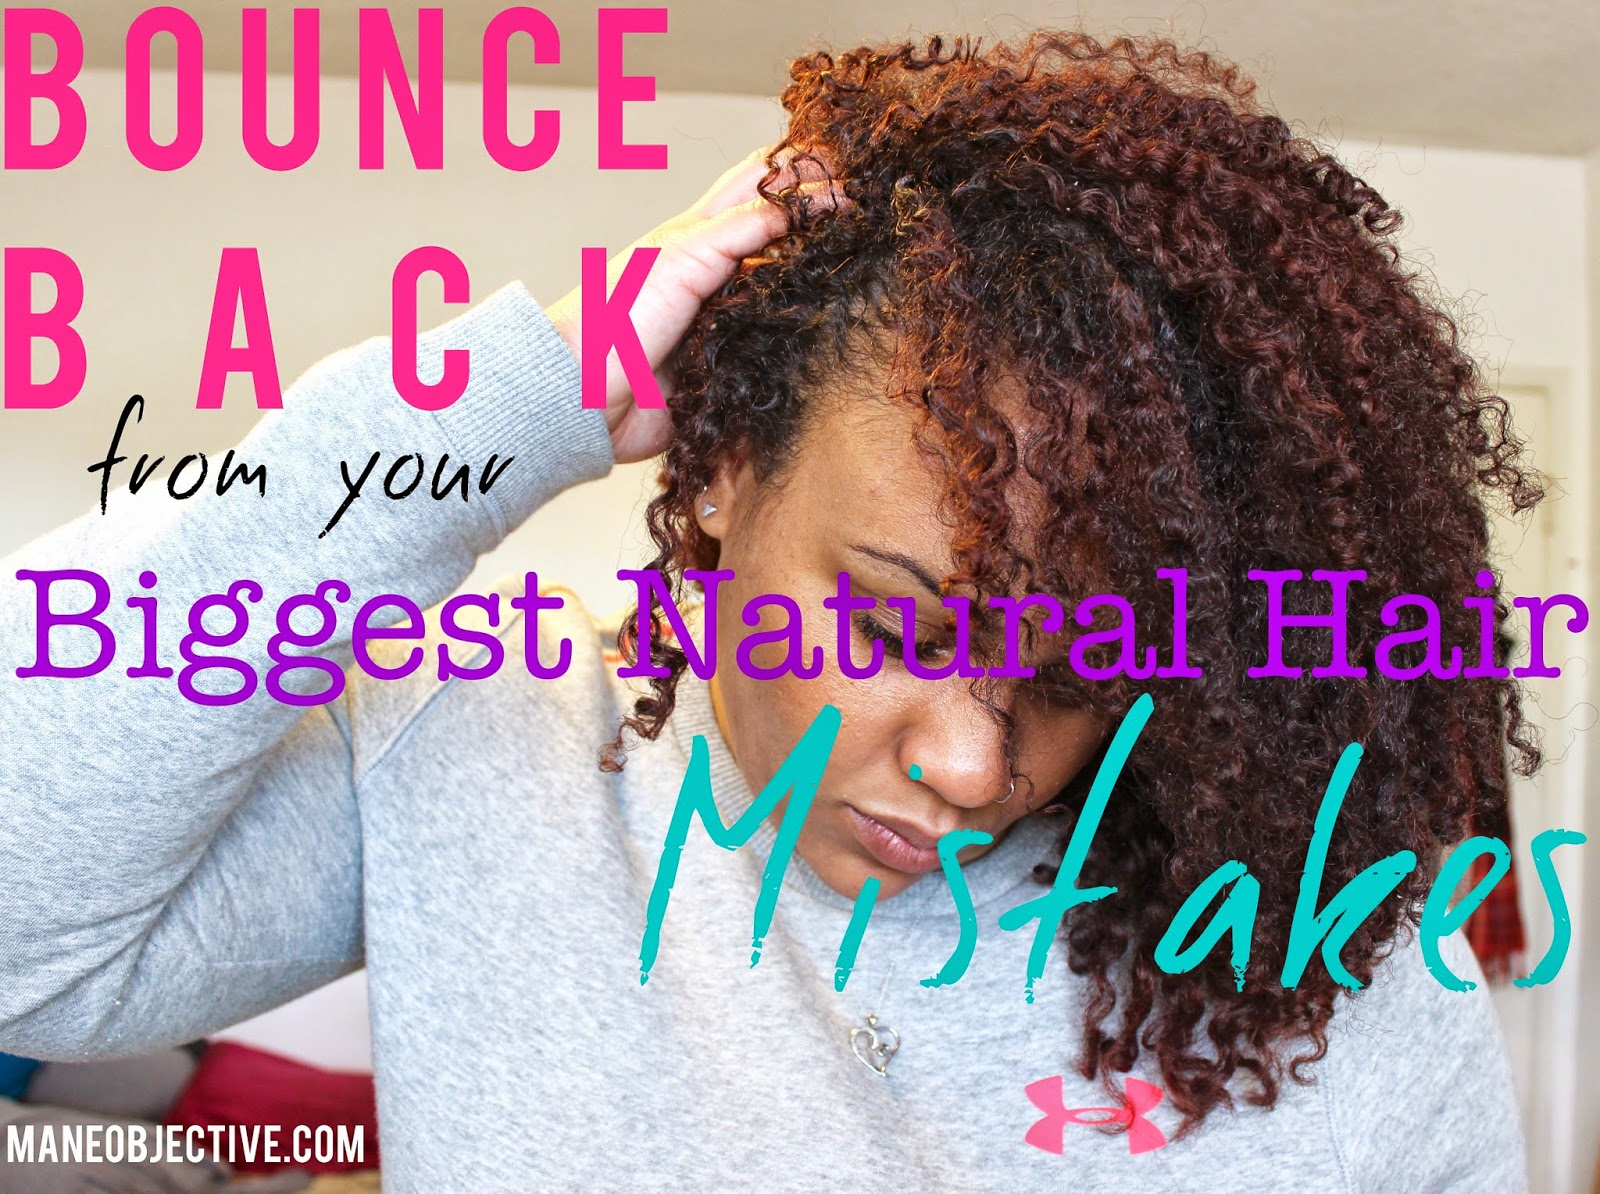 How to Bounce Back from Your Biggest Natural Hair Mistakes